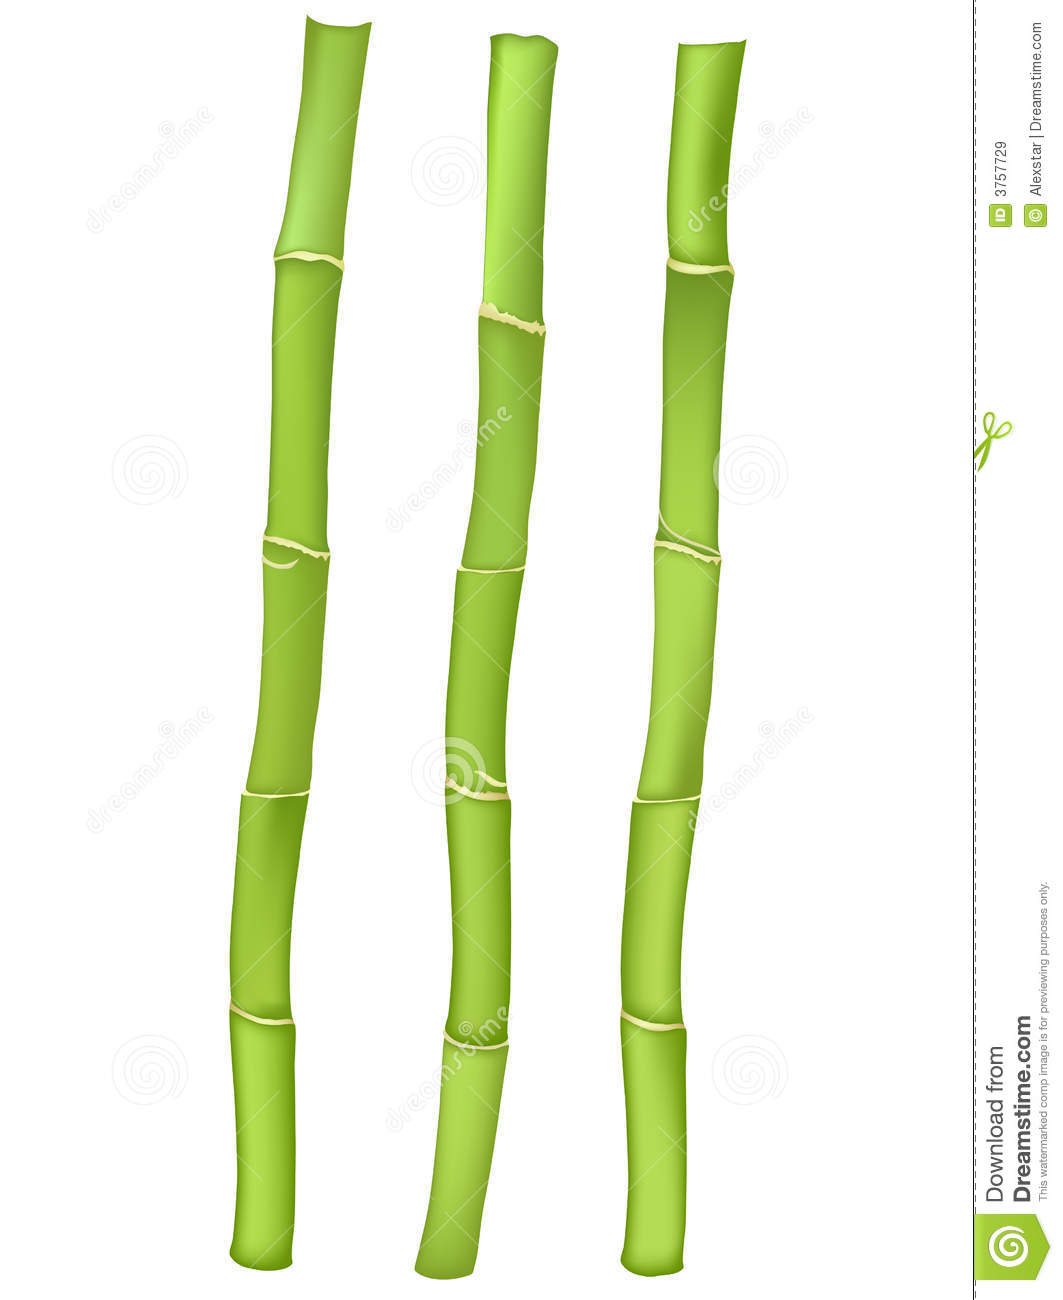 Bamboo cliparts.